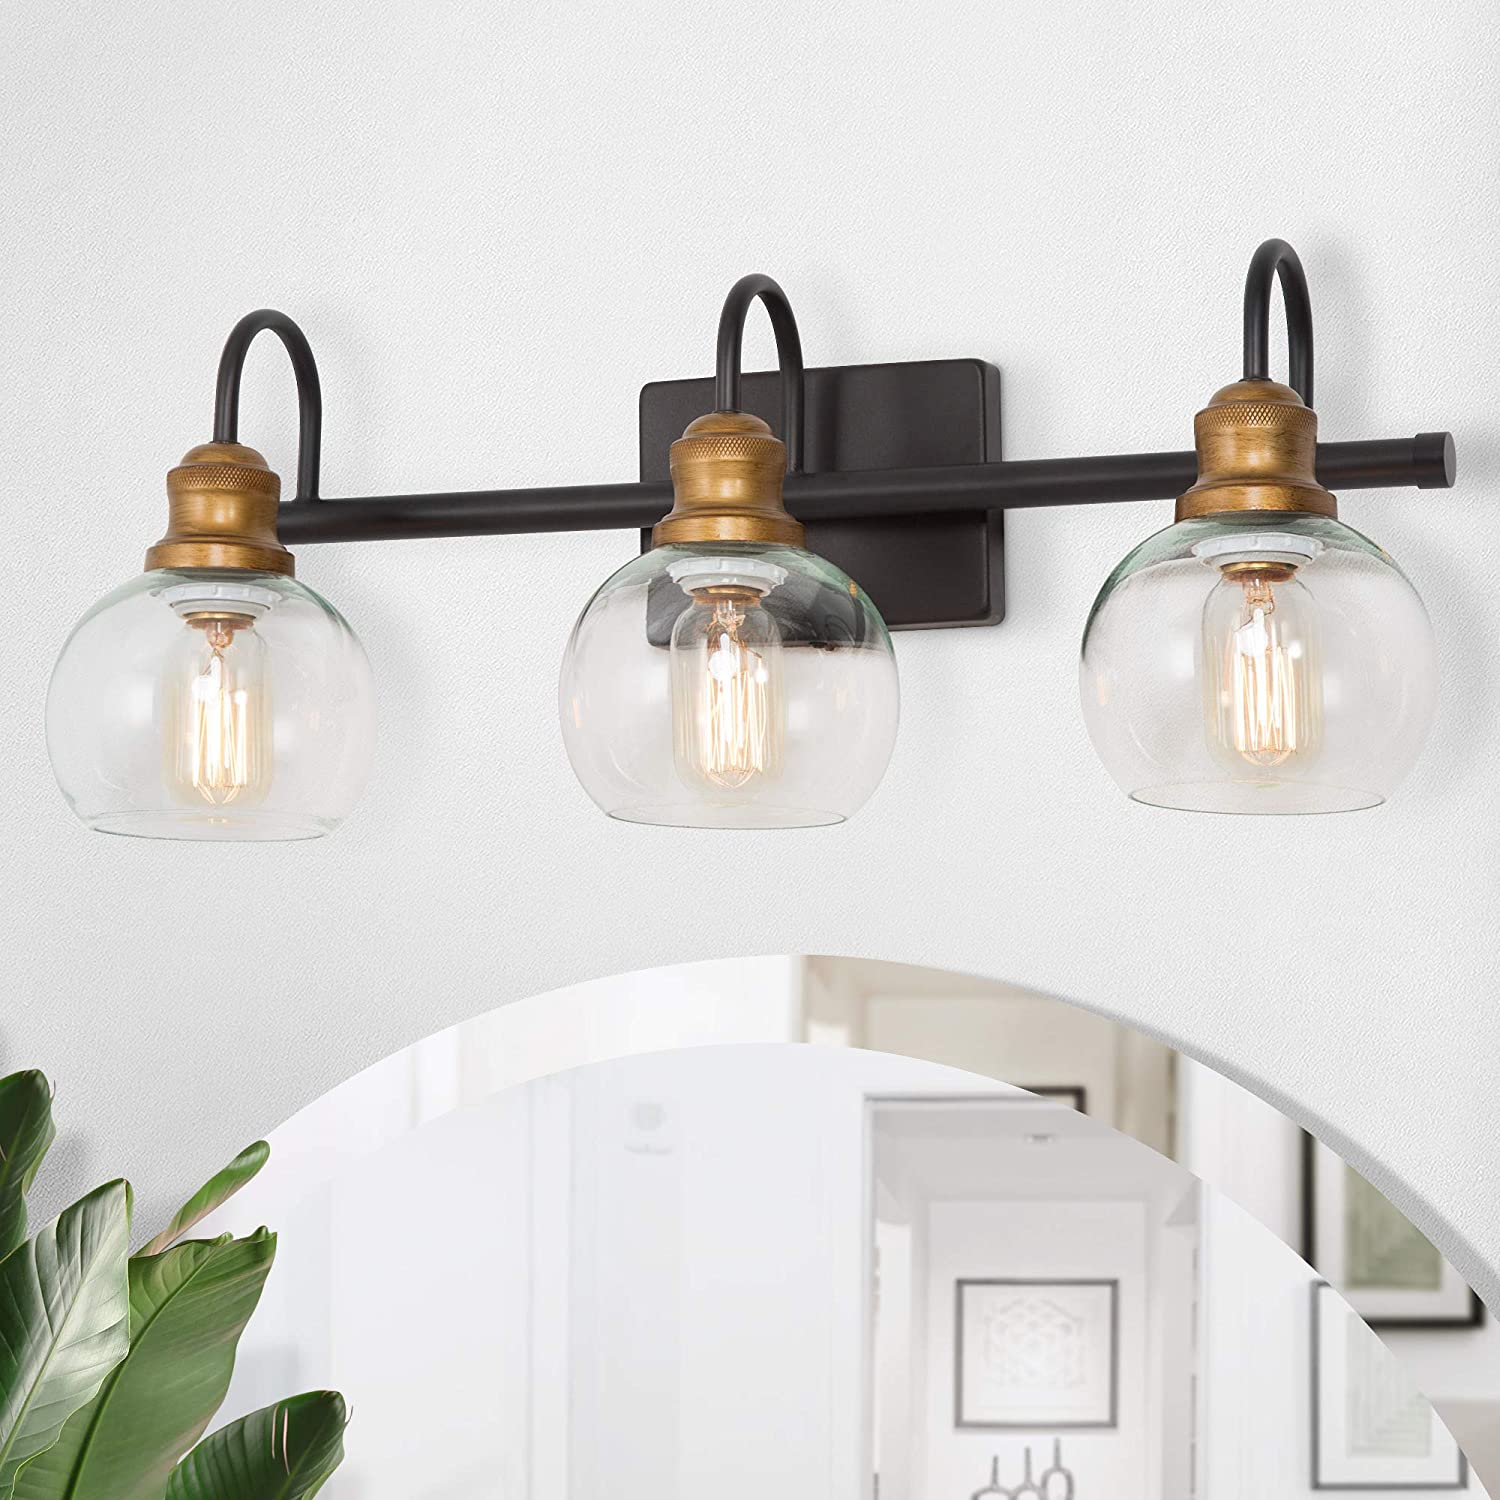 Laluz Bathroom Light Fixtures Vanity Lights With Oil Rubbed Bronze Finish Antique Gold Socket Clear Glass Shade 22 5 L X 7 W X 9 H Amazon Com